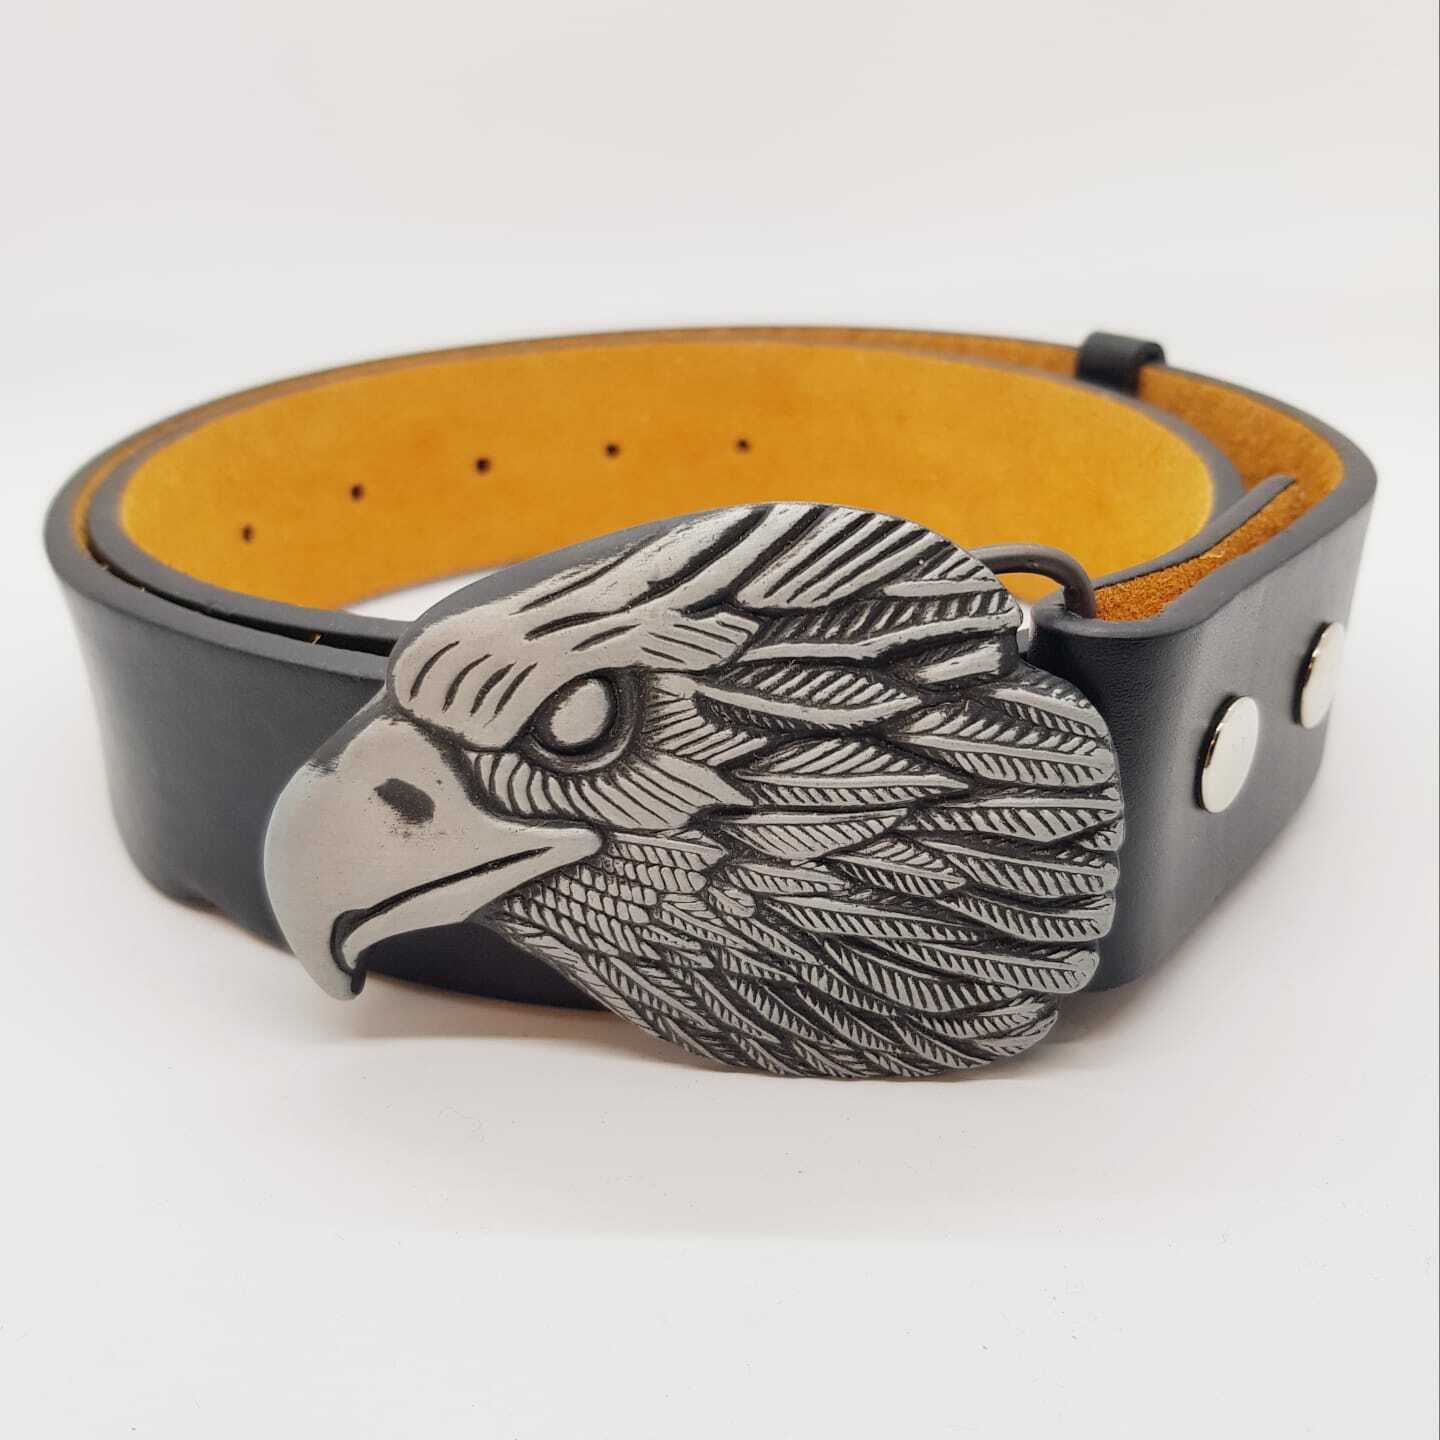 Golden Eagle Biker Buckle & Belt American Country Western celtic gothic Rodeo